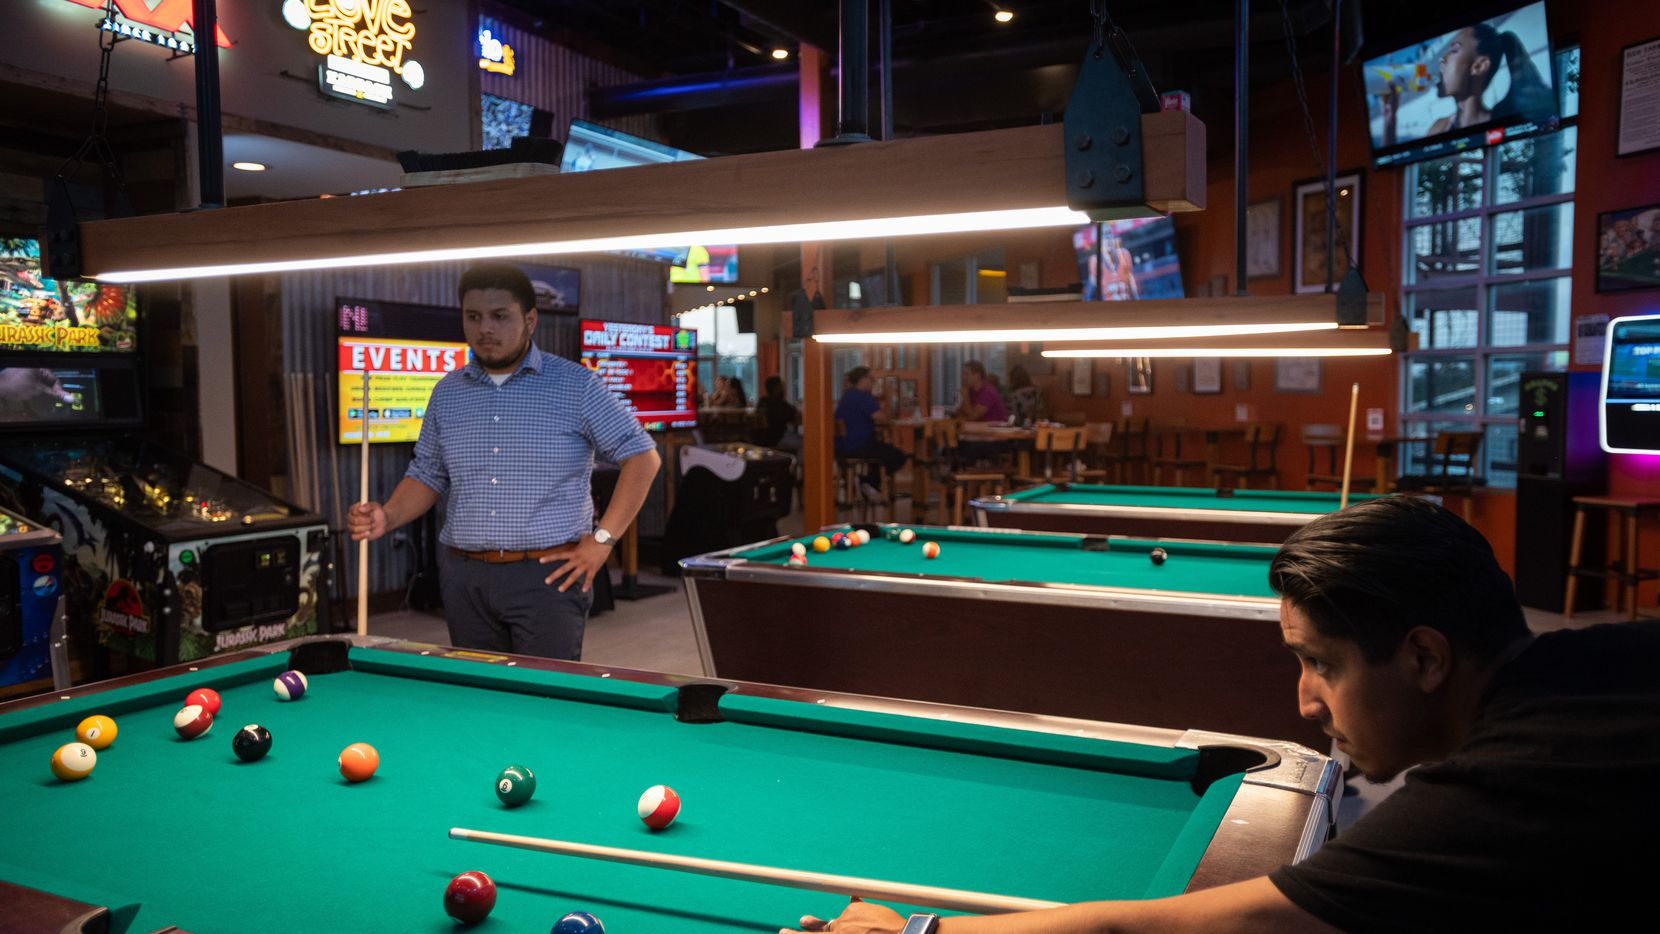 Sylvan Avenue Tavern in West Dallas opened in mid-August 2021, but it's made to look like people have been shooting pool here for years. It helps that sibling bar Bryan Street Tavern, in Old East Dallas, has that same vibe.